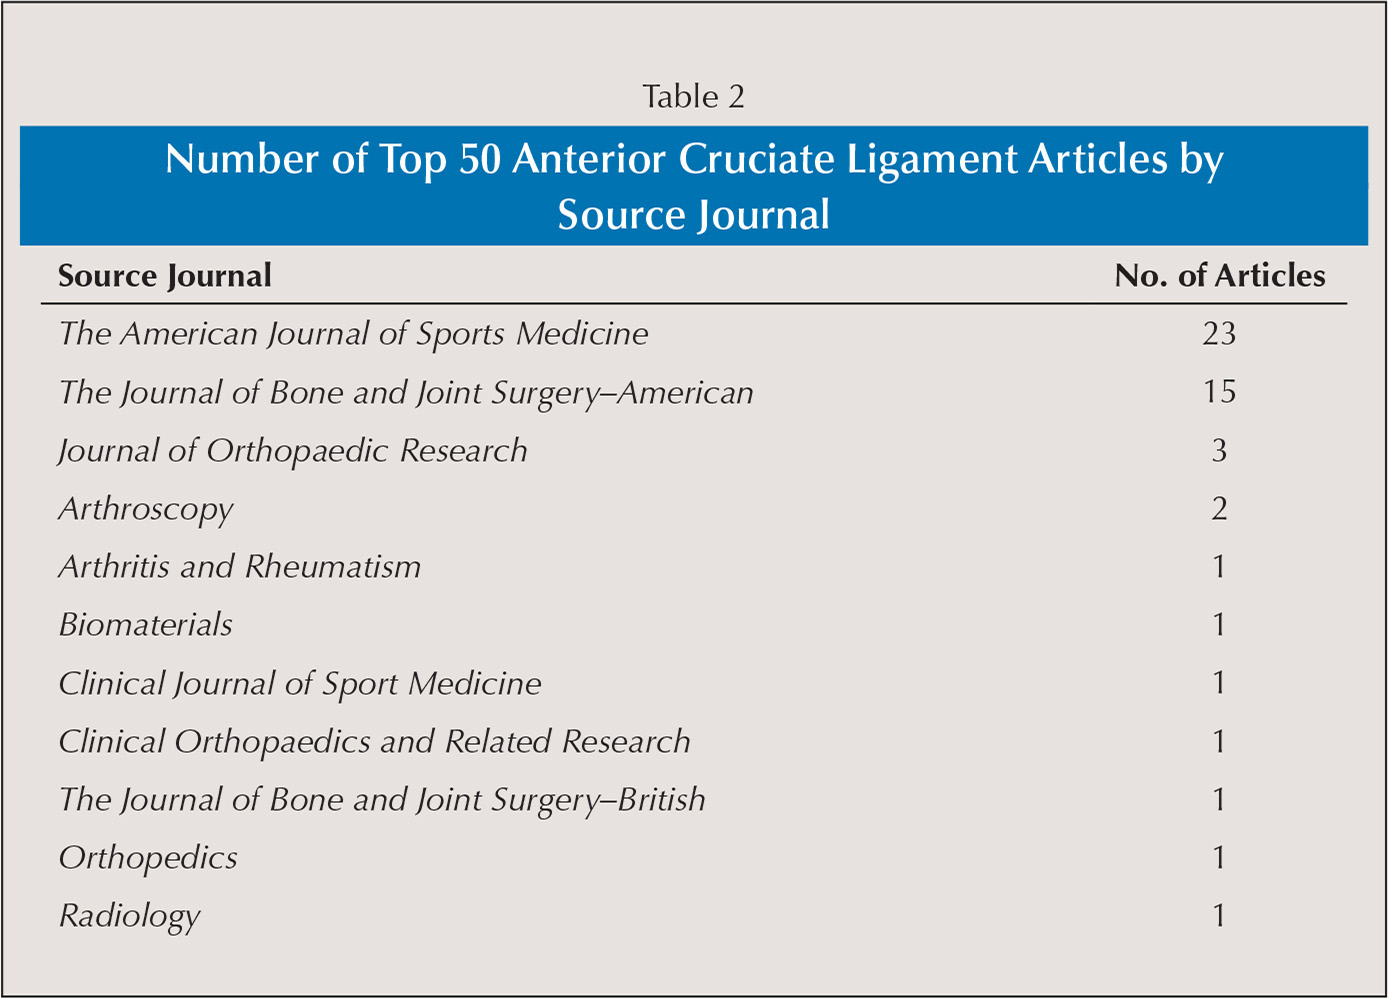 Number of Top 50 Anterior Cruciate Ligament Articles by Source Journal